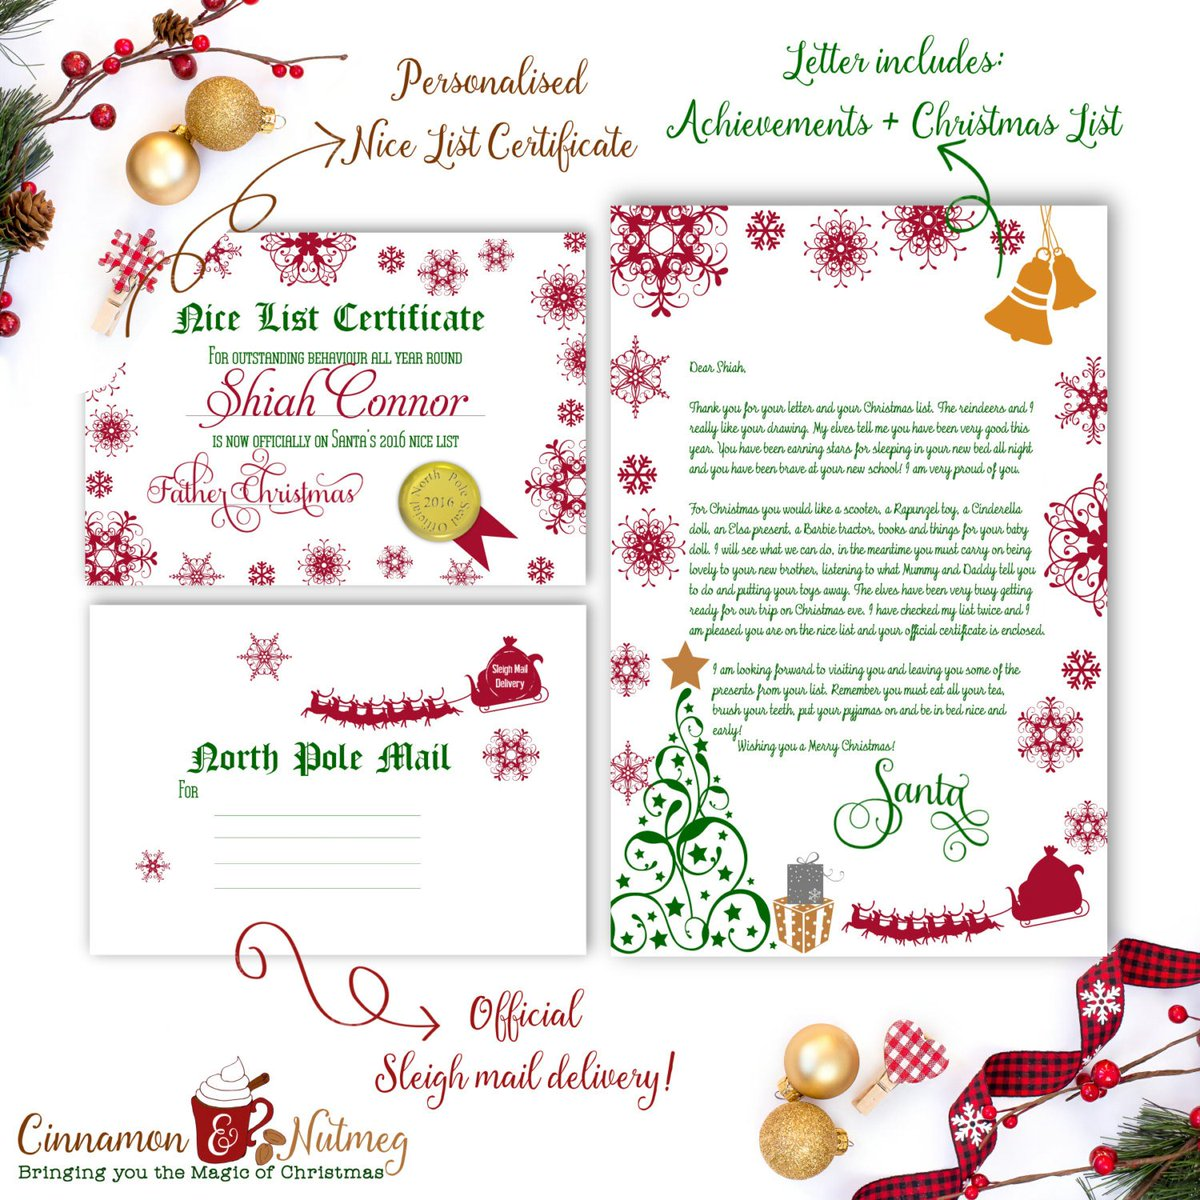 Cinnamon nutmeg cinnamonandnut twitter personalised santa letter from santa claus or father christmas done httptuppued2bfb8e etsy nicecertificatepicitteraevue1szfi spiritdancerdesigns Choice Image